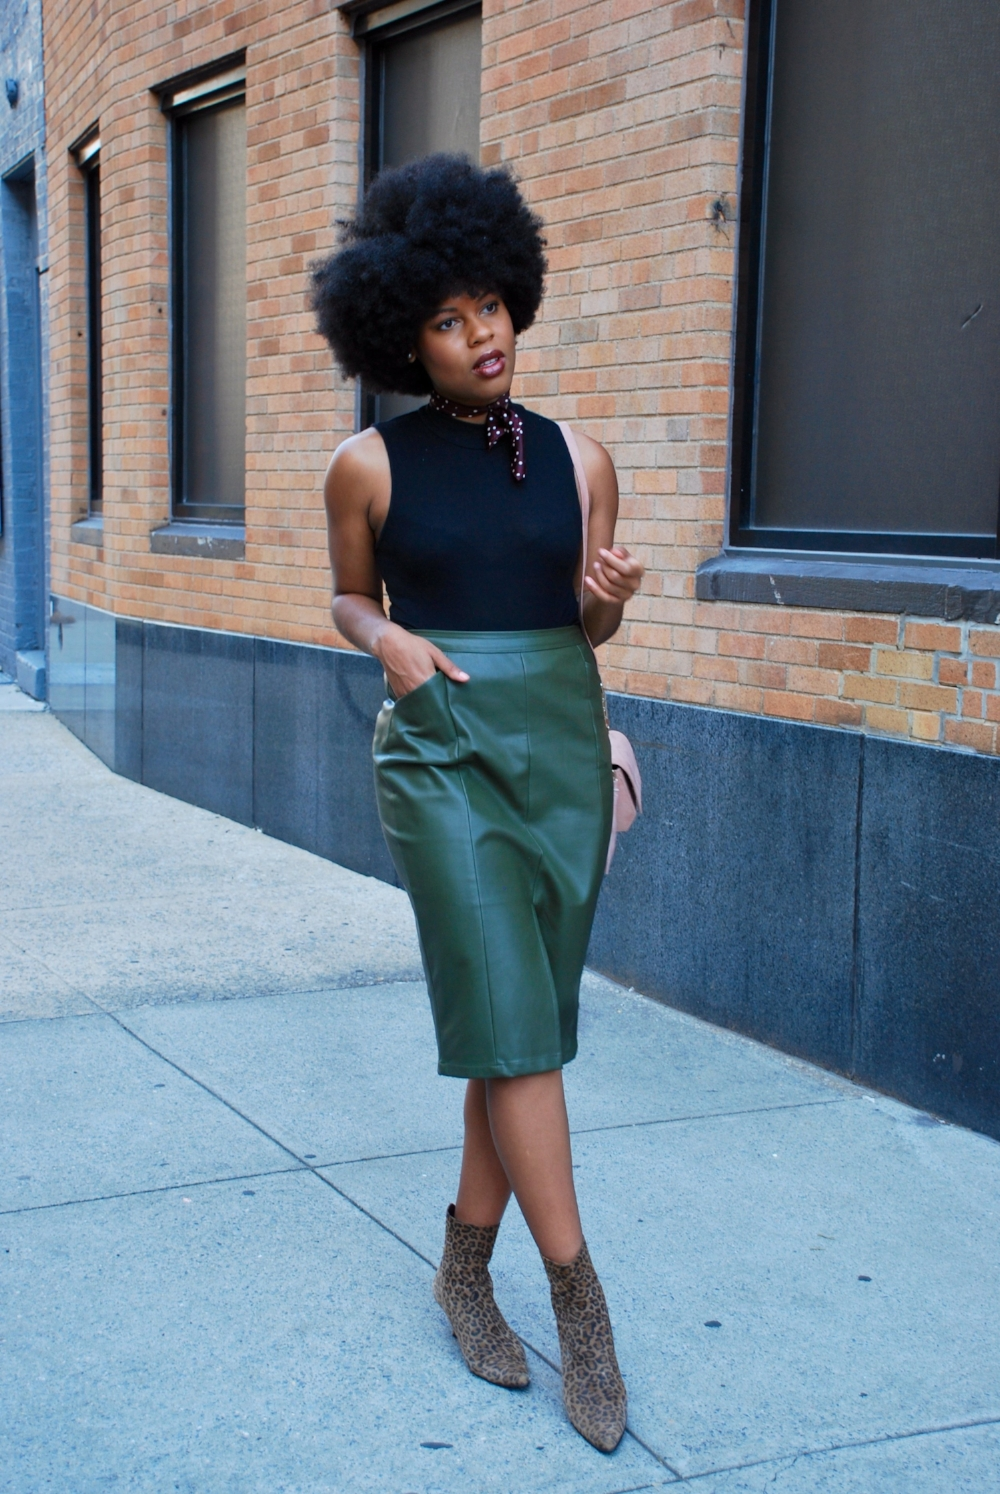 NYFW Street Style What They Wear To The Shows